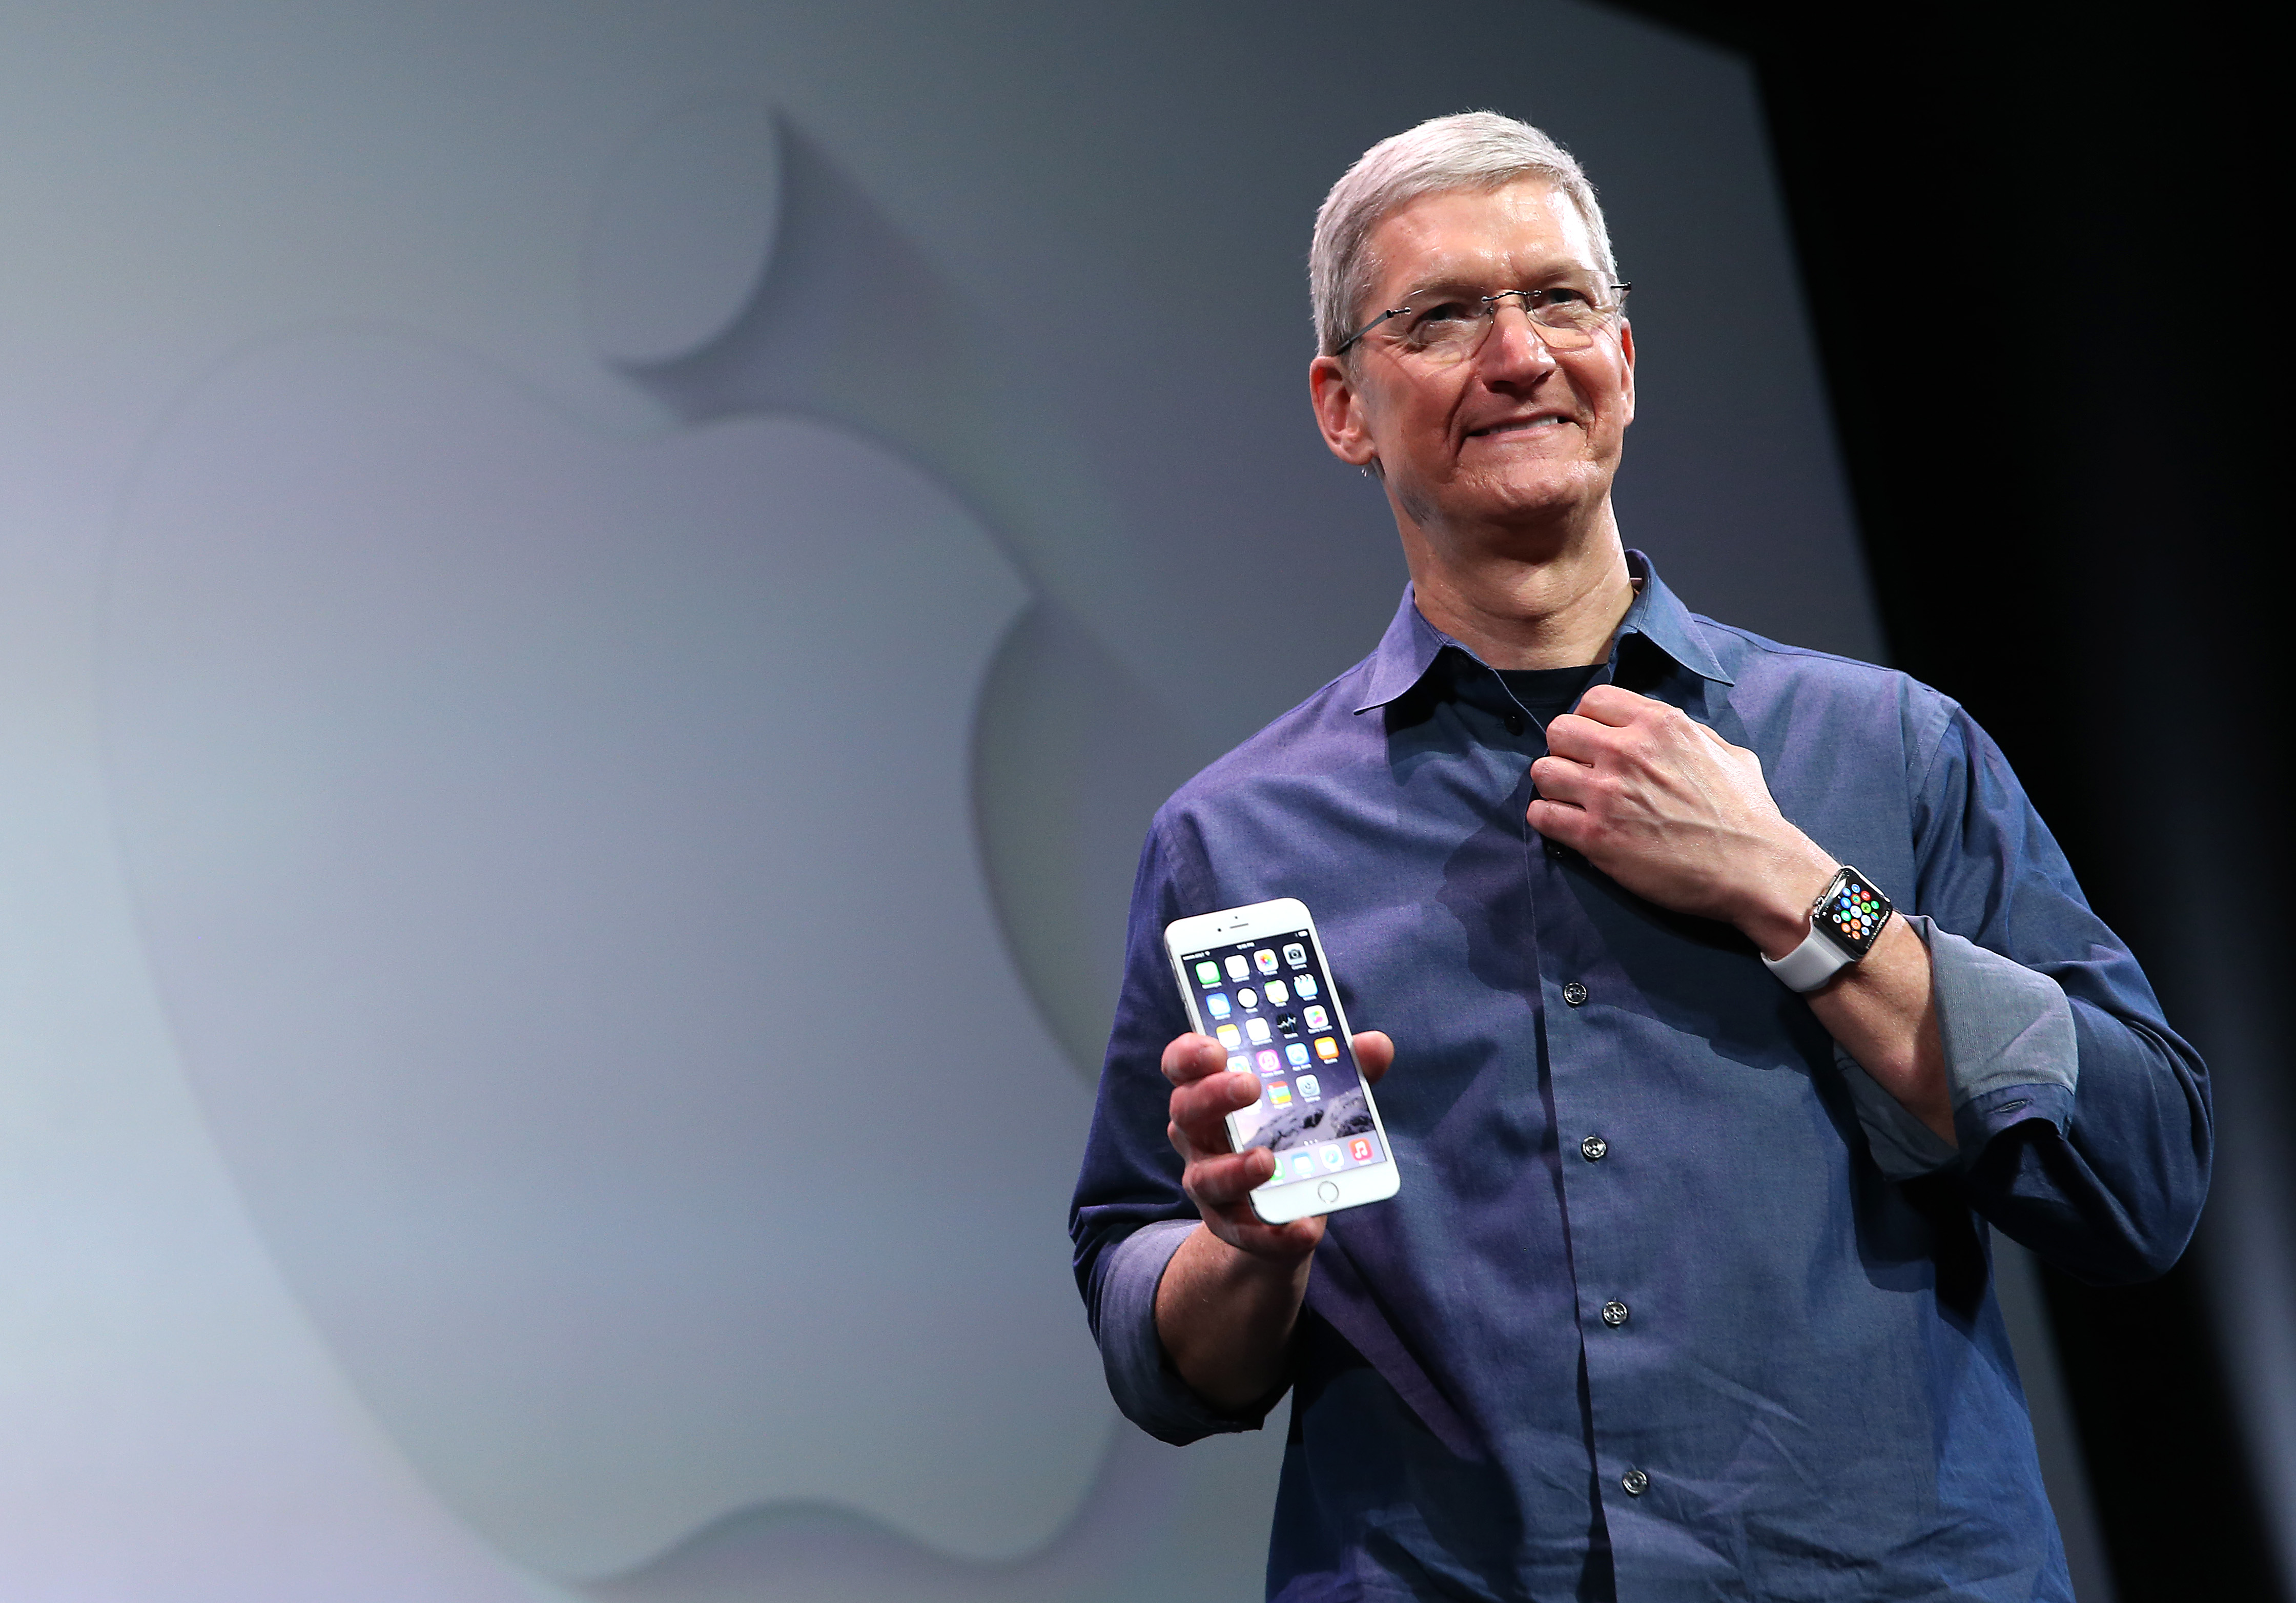 Apple CEO Tim Cook shows off the new iPhone 6 and the Apple Watch during an Apple special event at the Flint Center for the Performing Arts on September 9, 2014 in Cupertino, California. Apple is expected to unveil the new iPhone 6 and wearble tech.